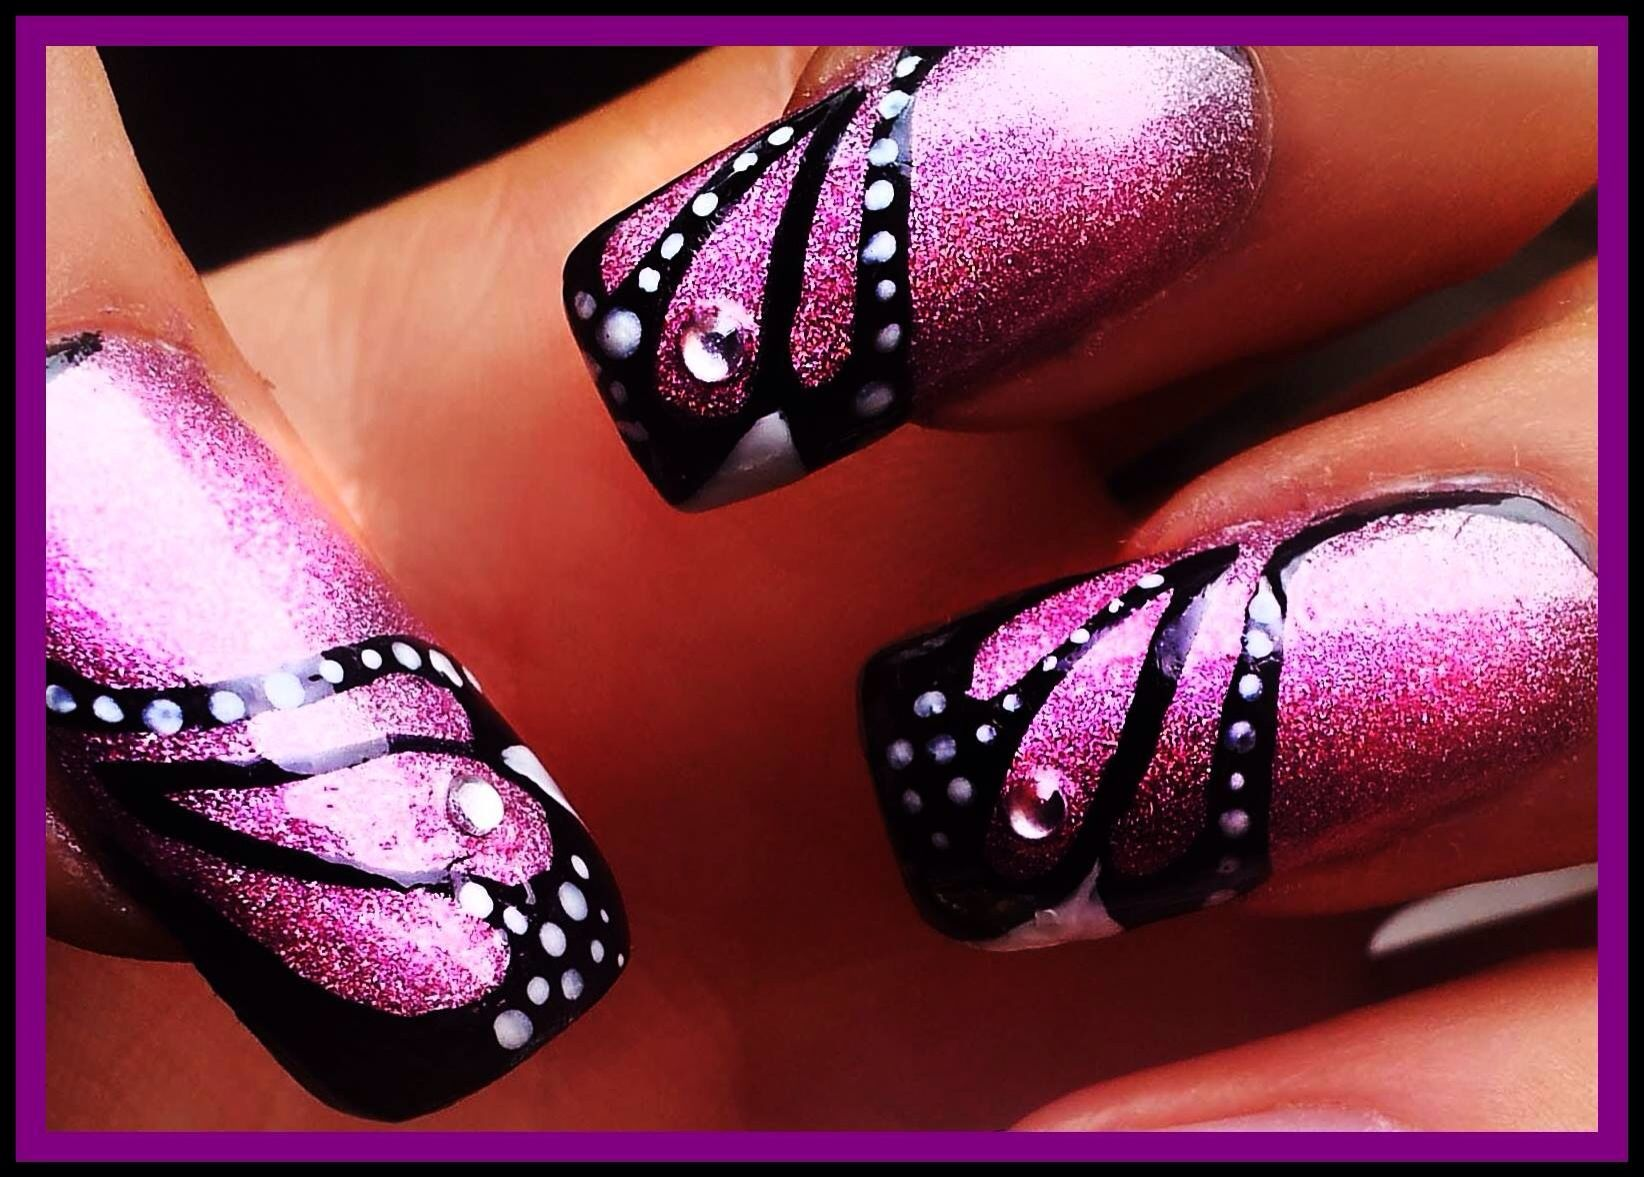 Butterfly wings would look amazing in blues and greens :D